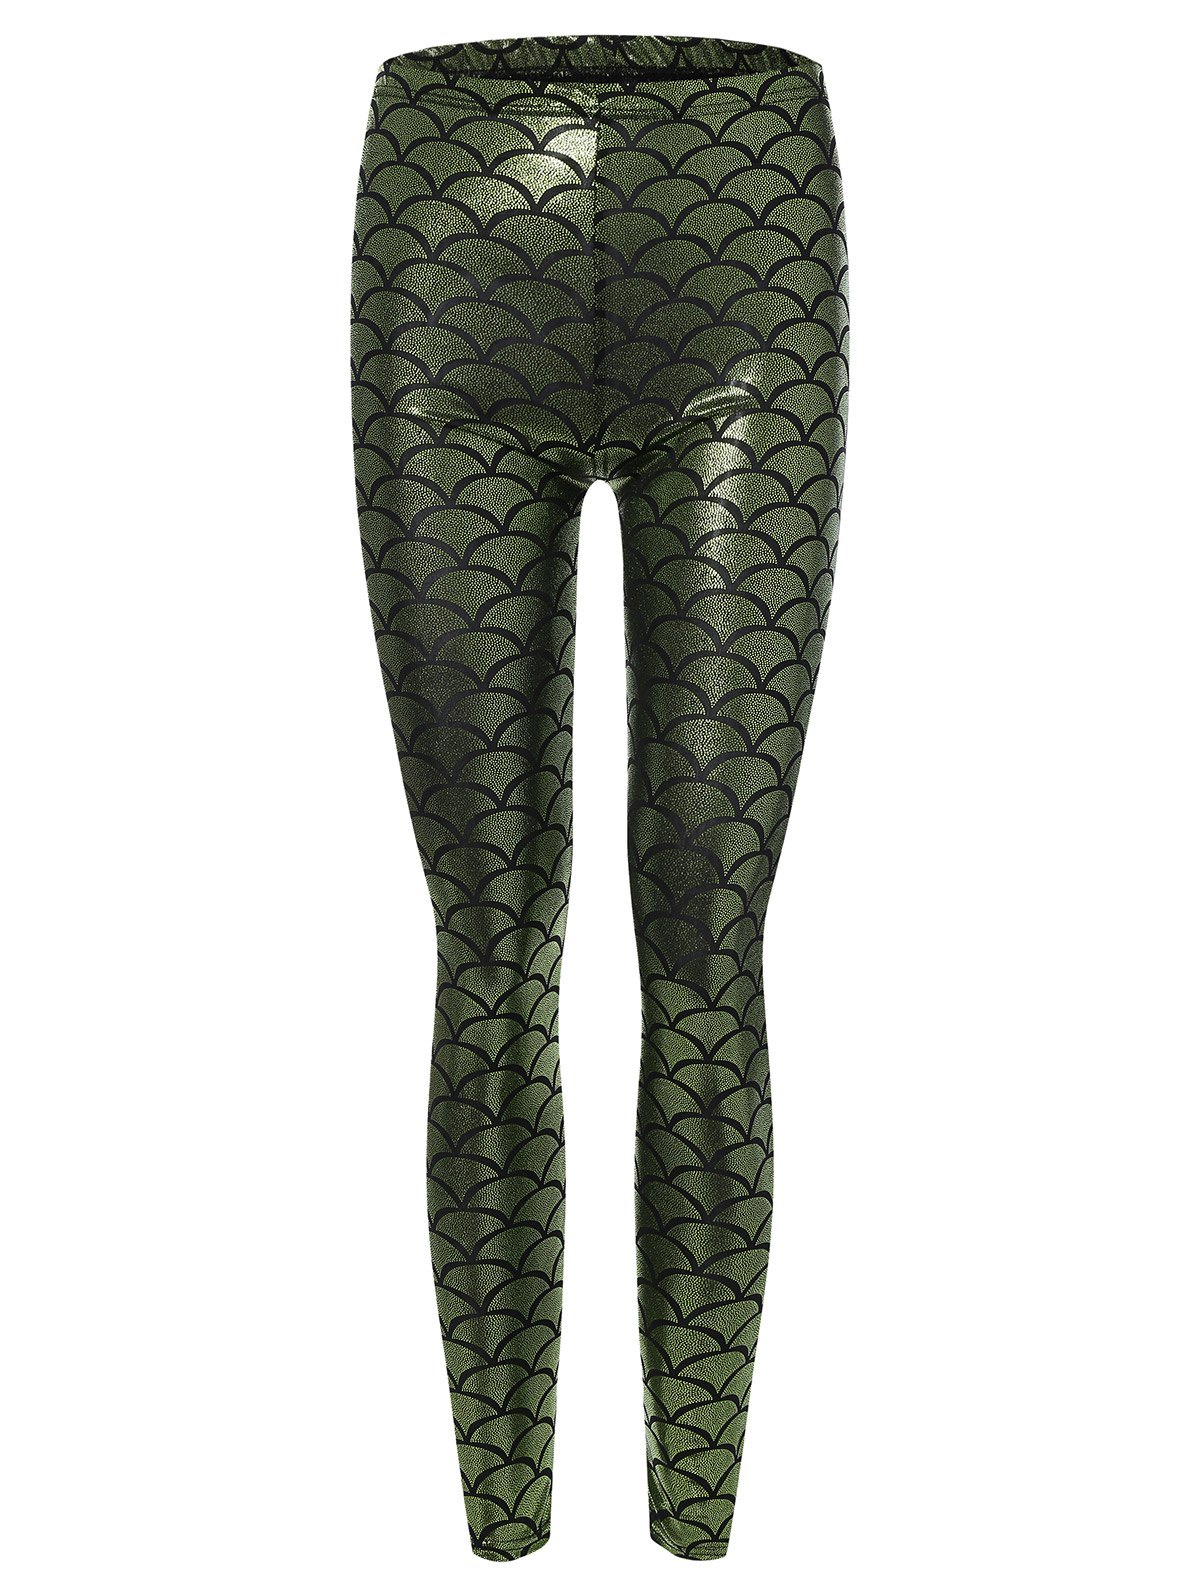 Store Skinny Mermaid Leggings